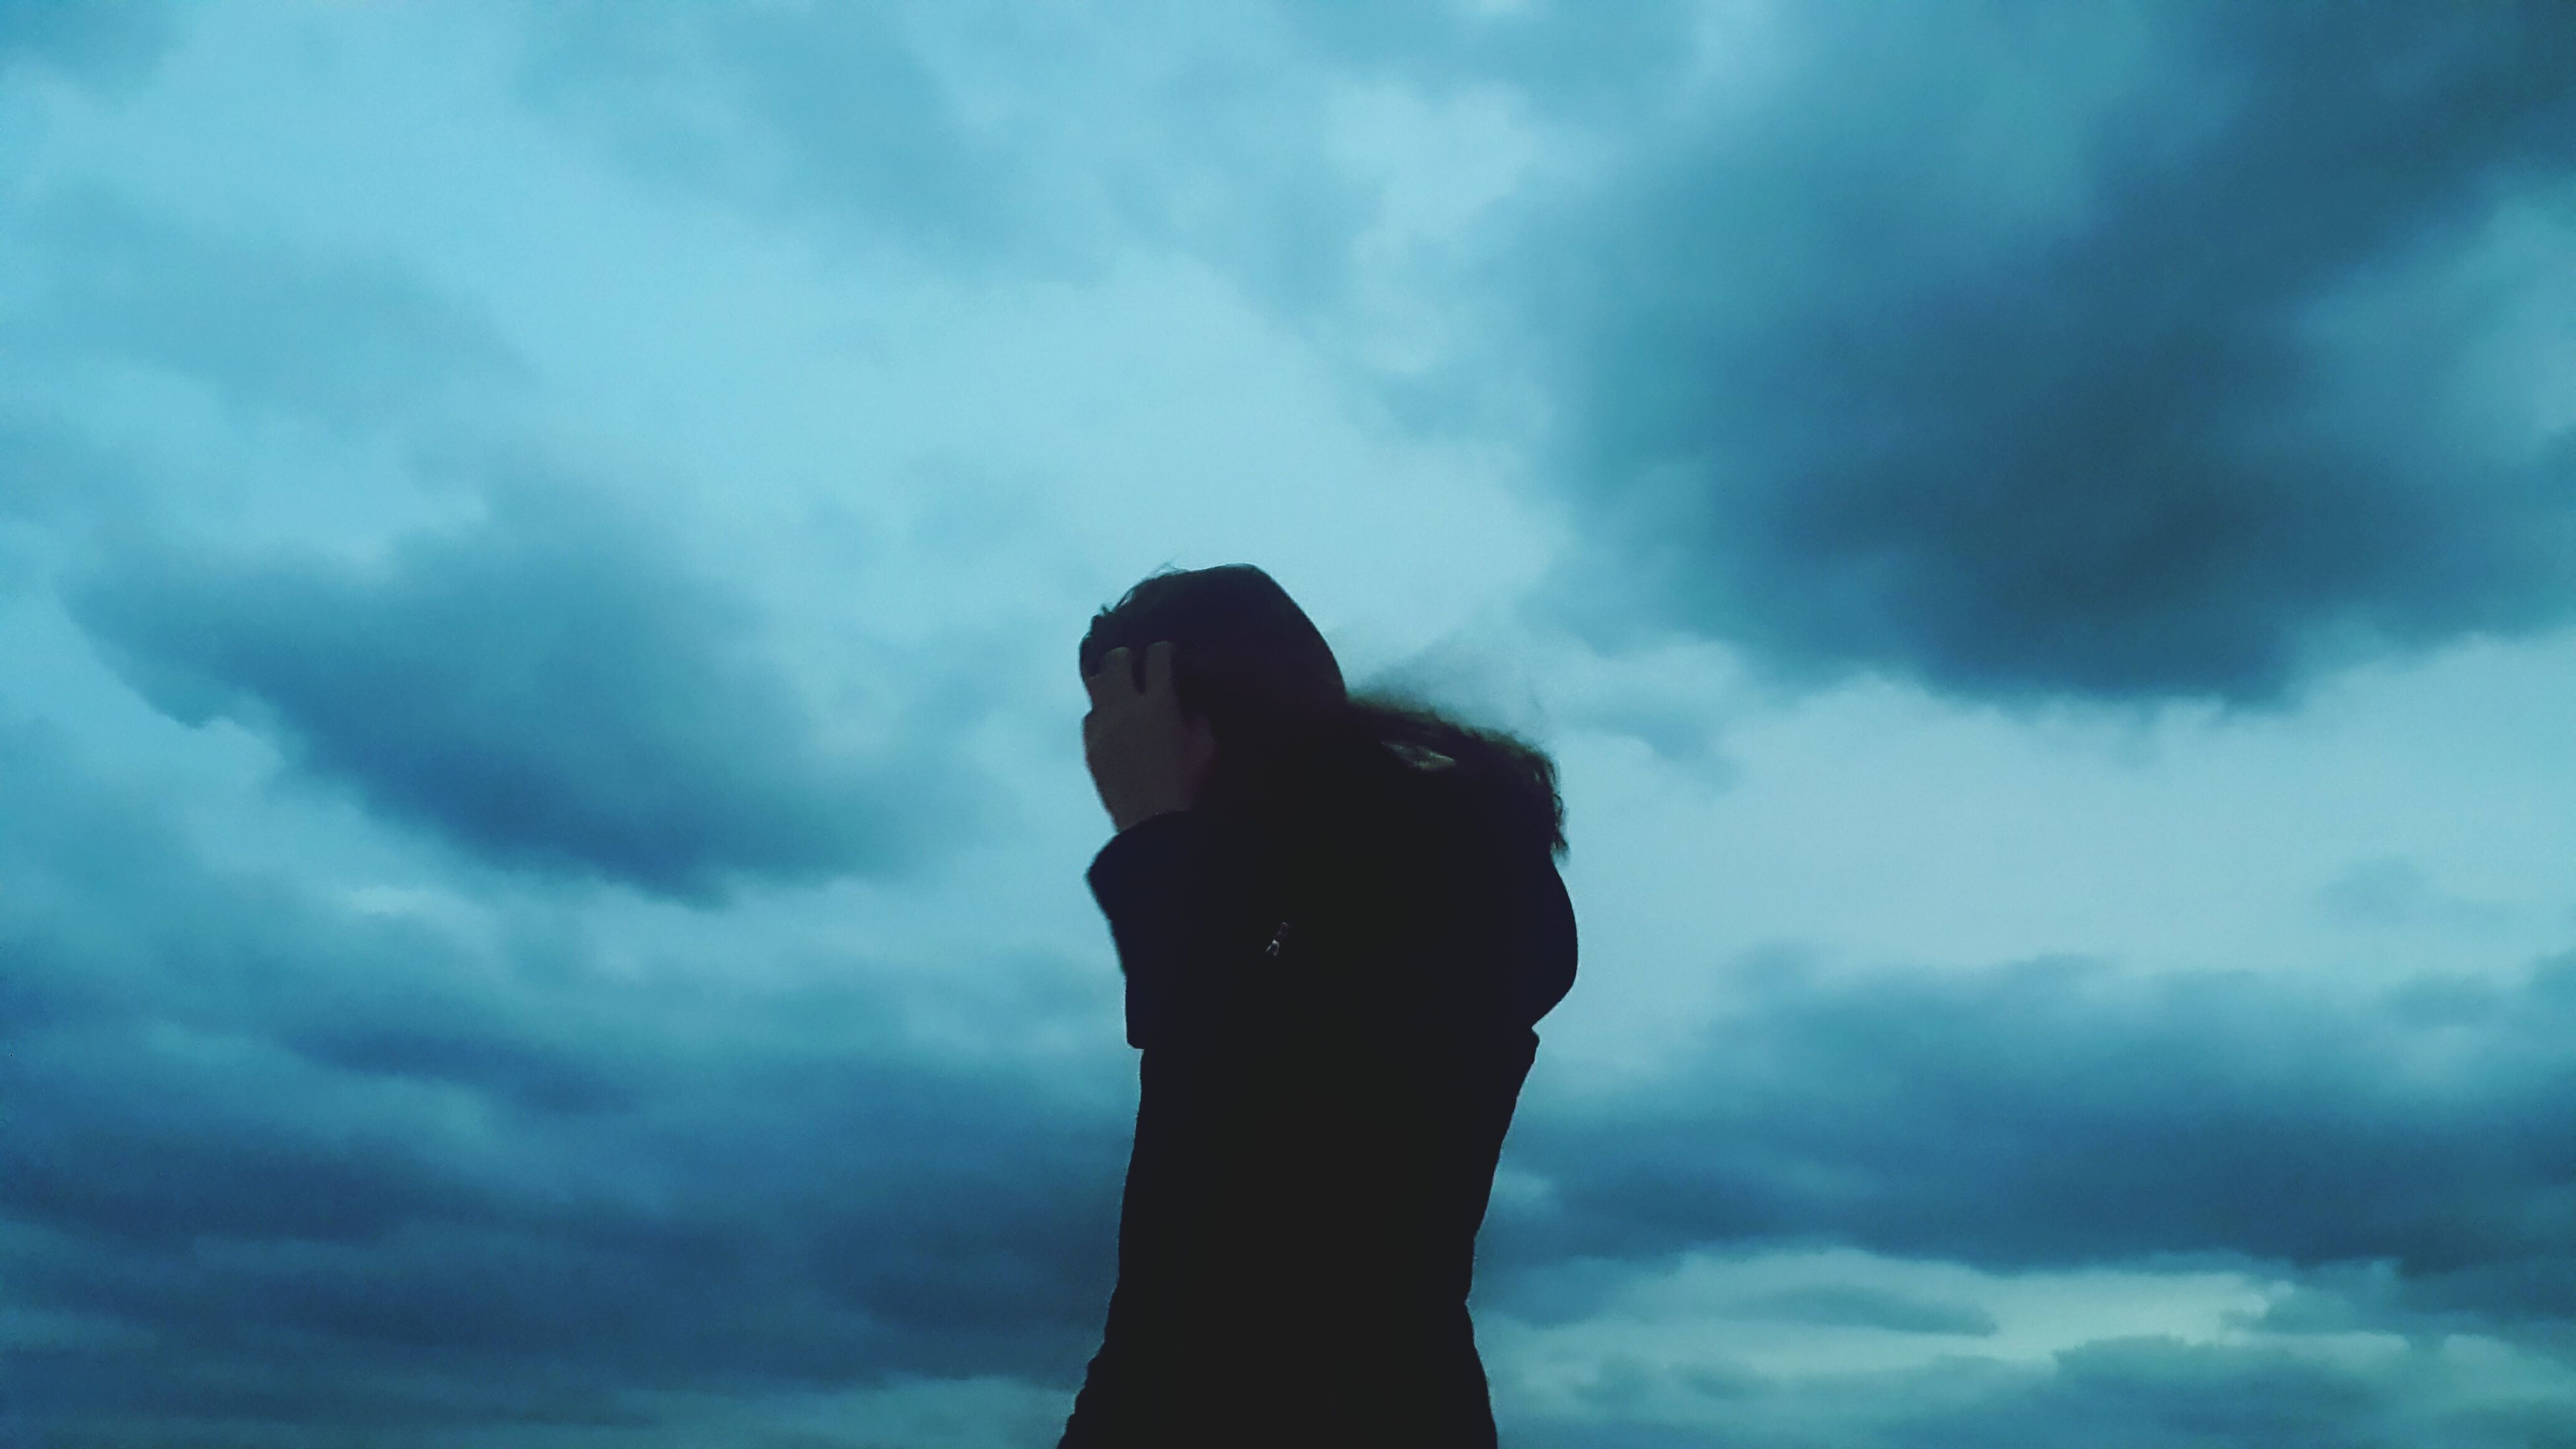 three quarter length, sky, standing, silhouette, cloud - sky, low angle view, leisure activity, waist up, lifestyles, cloudy, person, blue, carefree, cloud, outdoors, atmospheric mood, outline